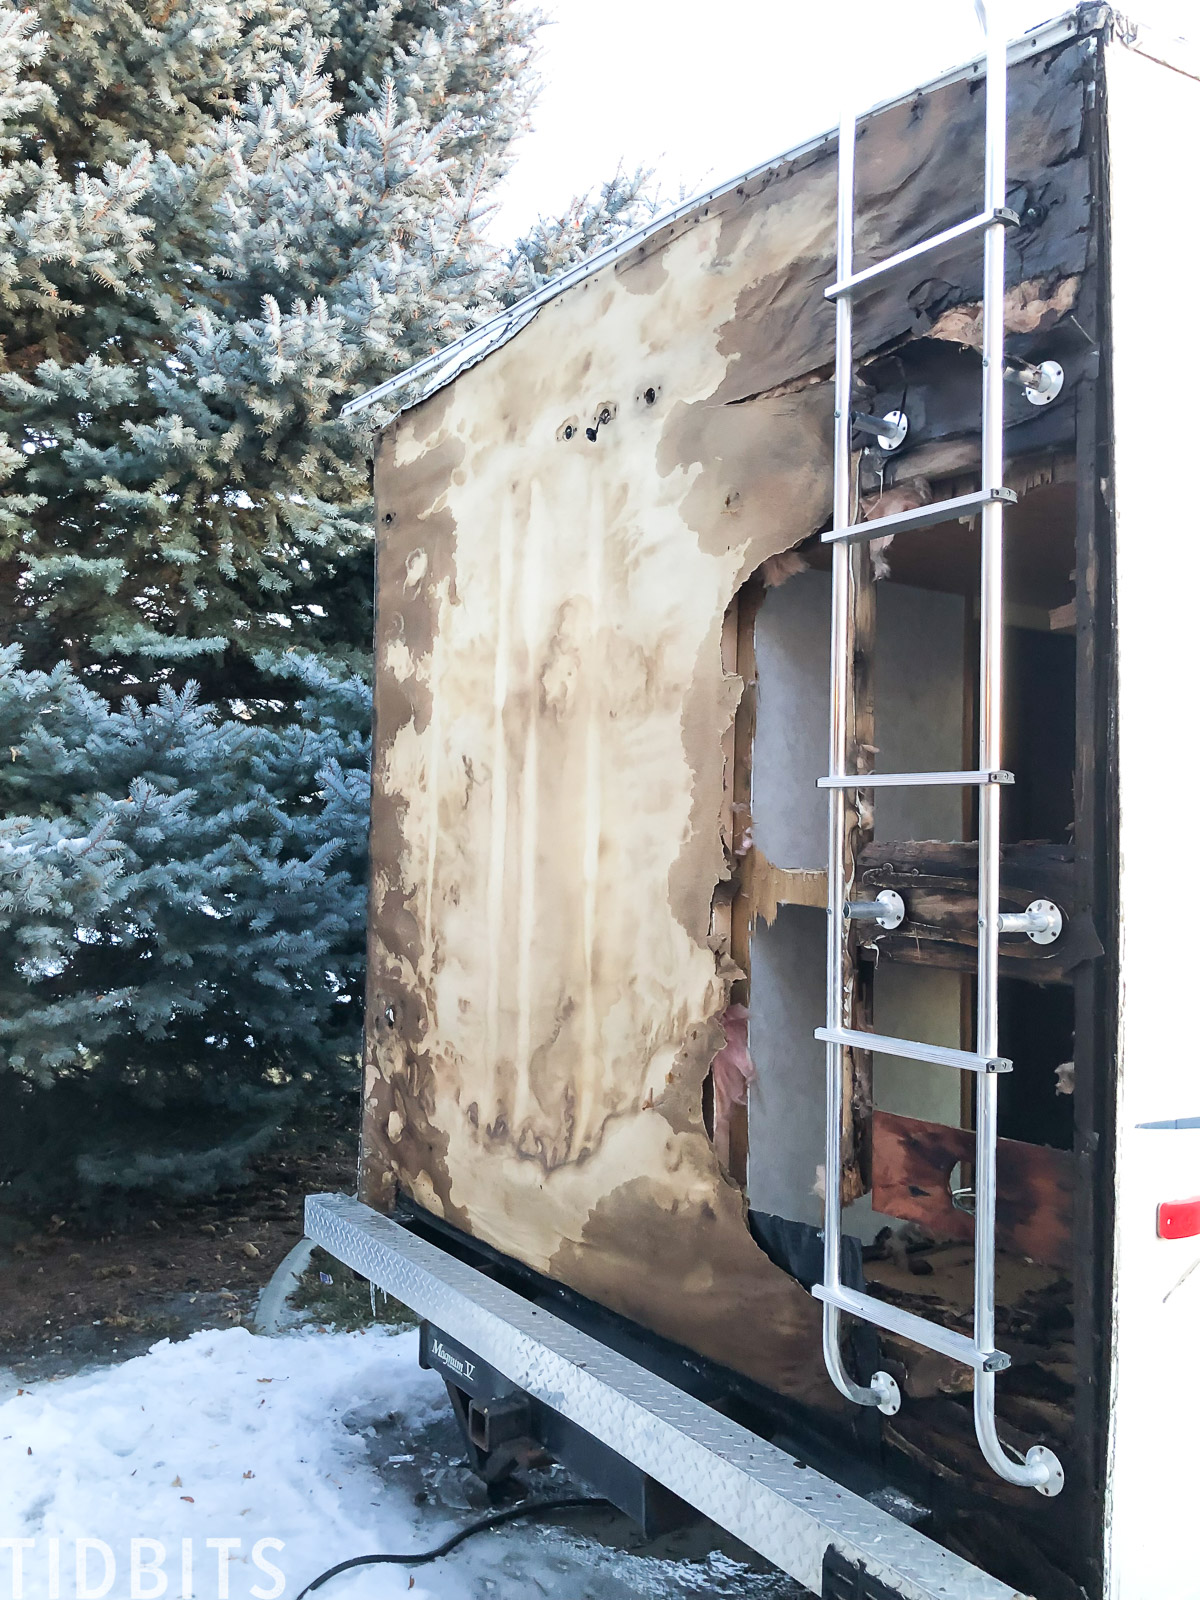 Water and mold damage in RV, solutions.